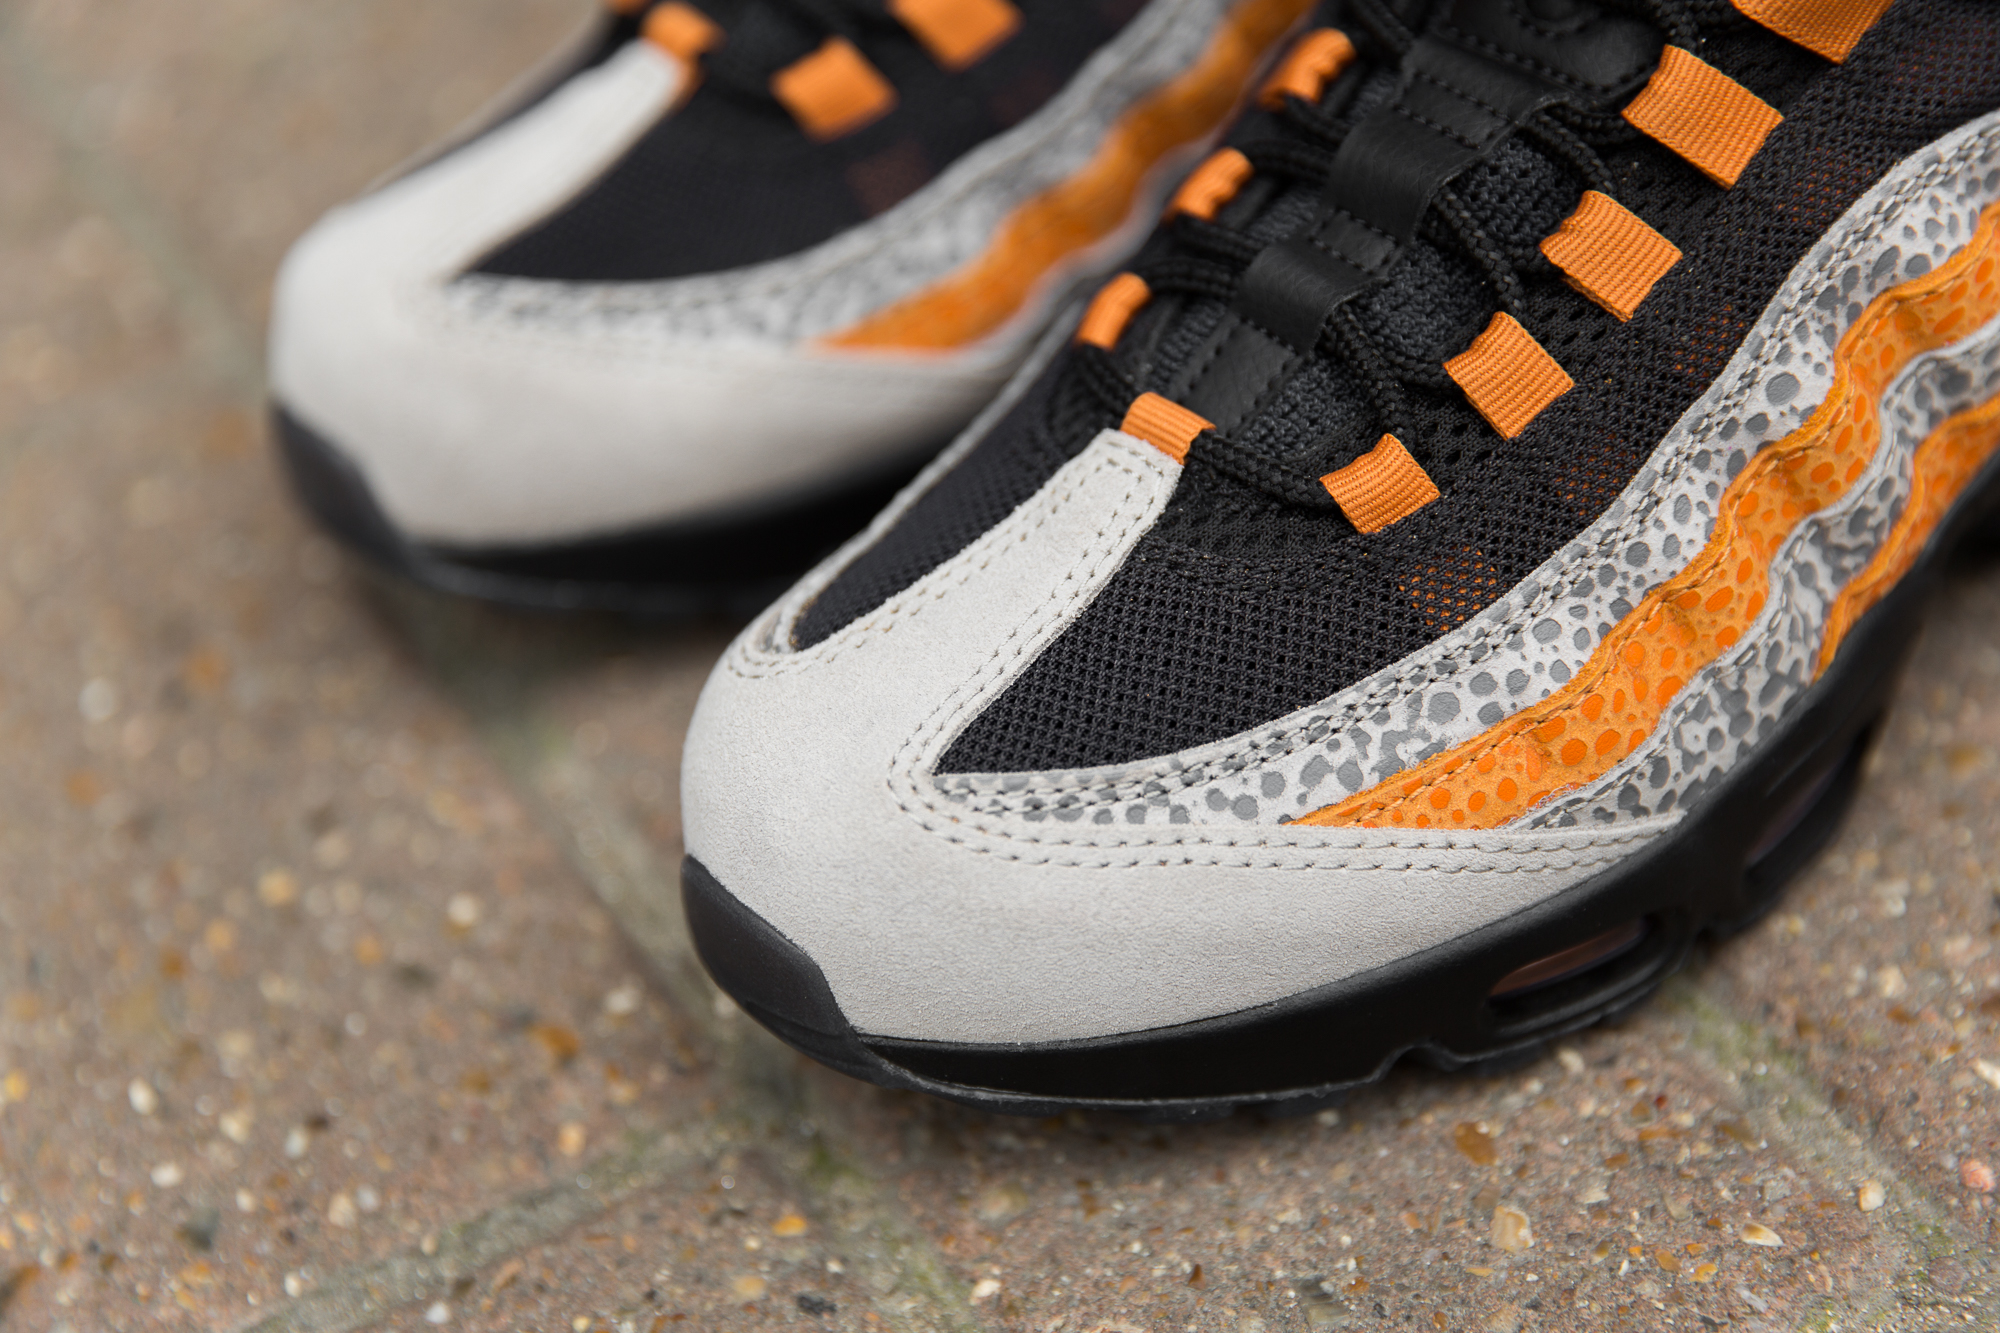 247d6b33c6 The size? Exclusive Nike Air Max 95 'Safari' will be available via our  size?previews app, and in all size? stores on Friday 8th June, priced at  £130.